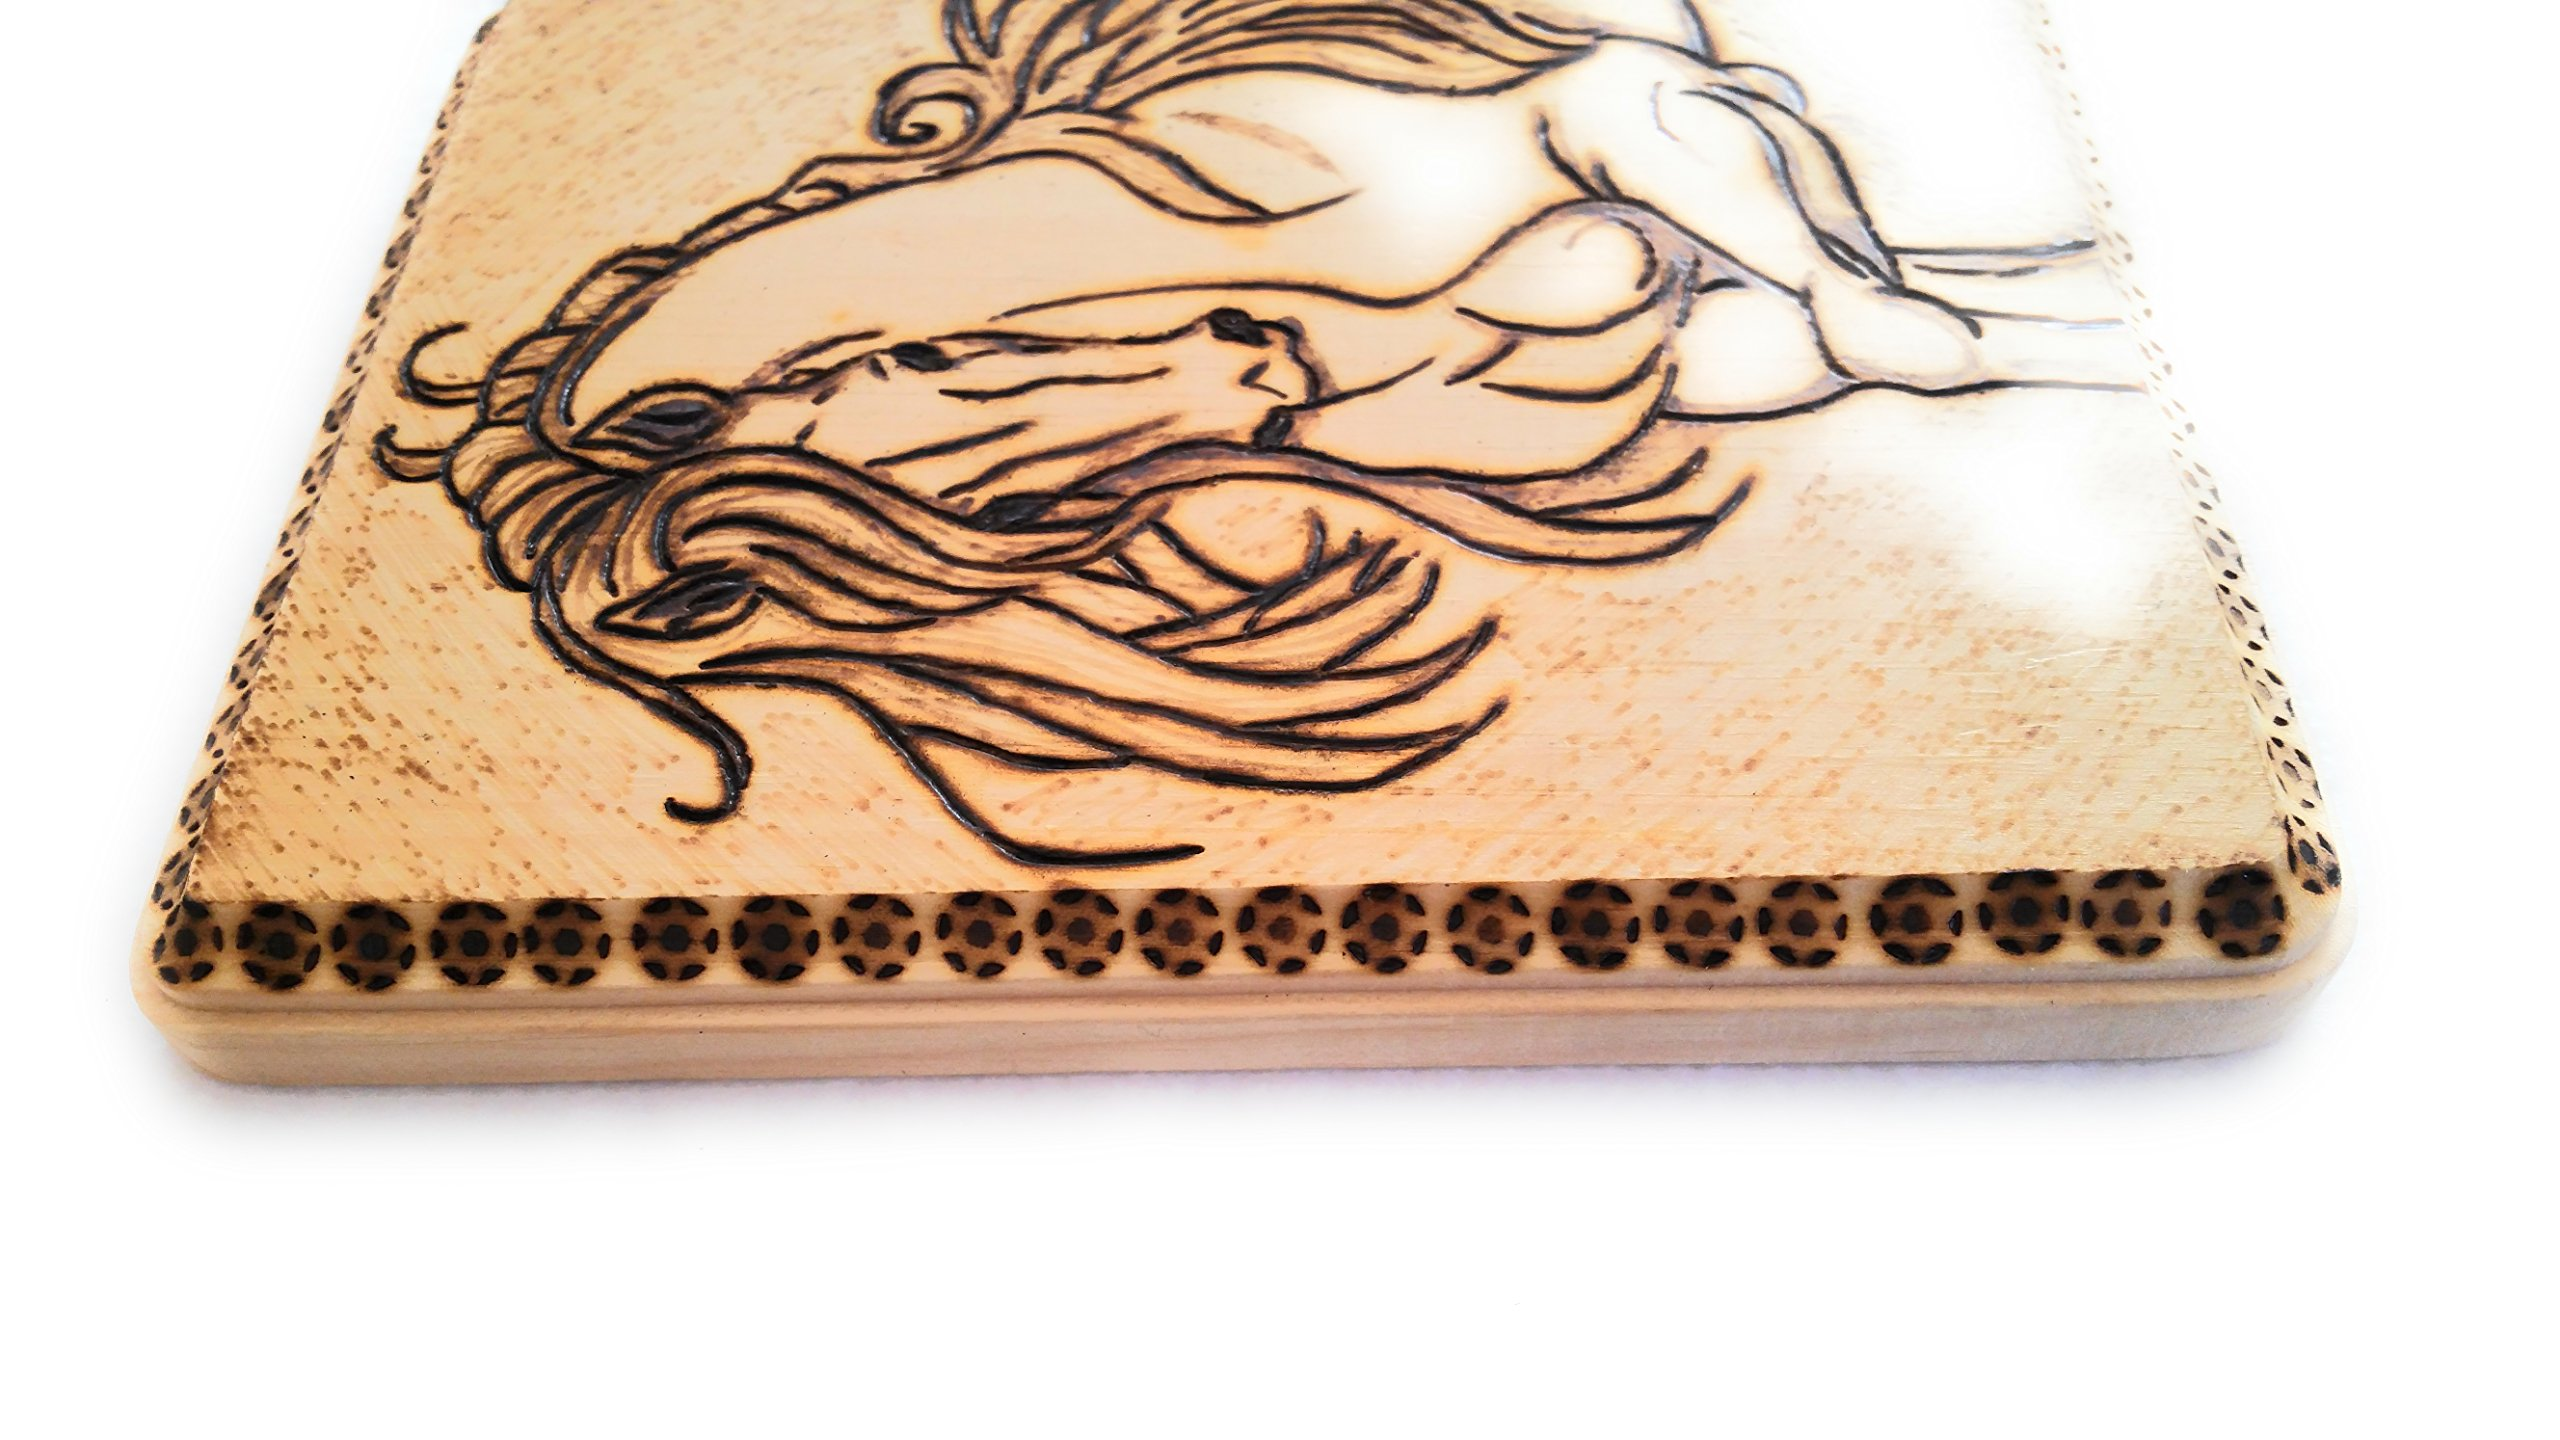 Home Decor Wood Burned Wall Hanging by Cimber's Home Decor+More (Image #3)